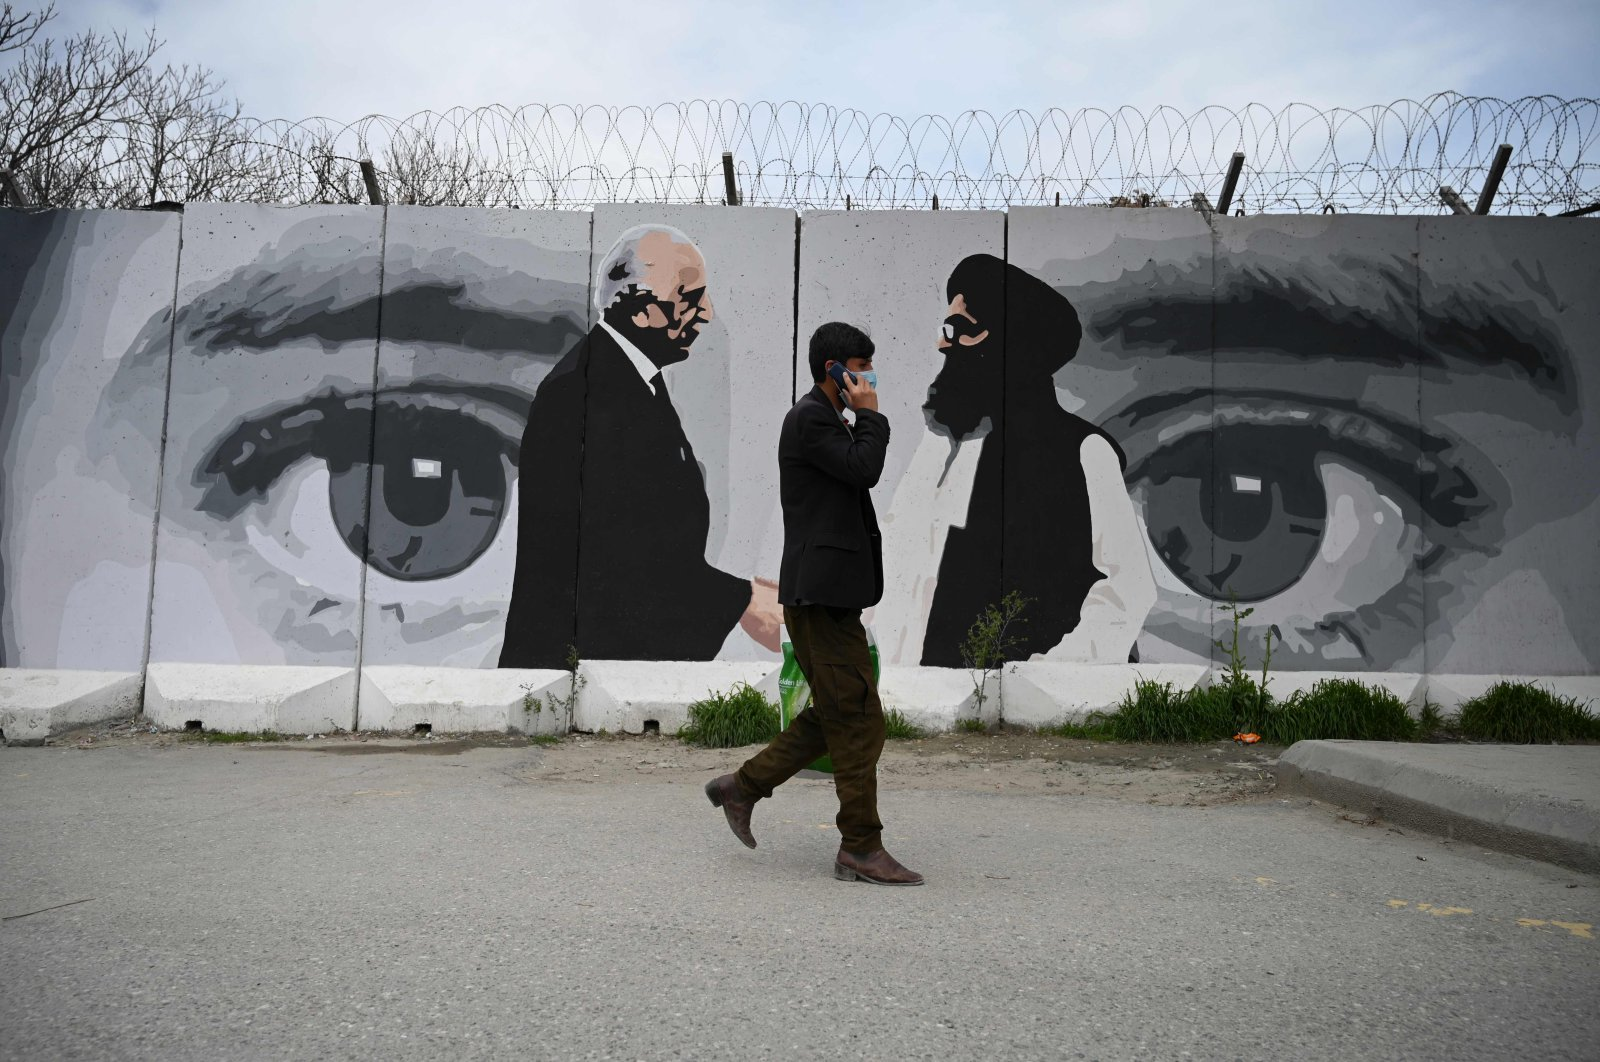 A man wearing a face mask as a precautionary measure against the novel coronavirus walks past a wall painted with images of U.S. Special Representative for Afghanistan Reconciliation Zalmay Khalilzad (L) and Taliban co-founder Mullah Abdul Ghani Baradar (R), in Kabul, Sunday, April 5, 2020. (AFP Photo)